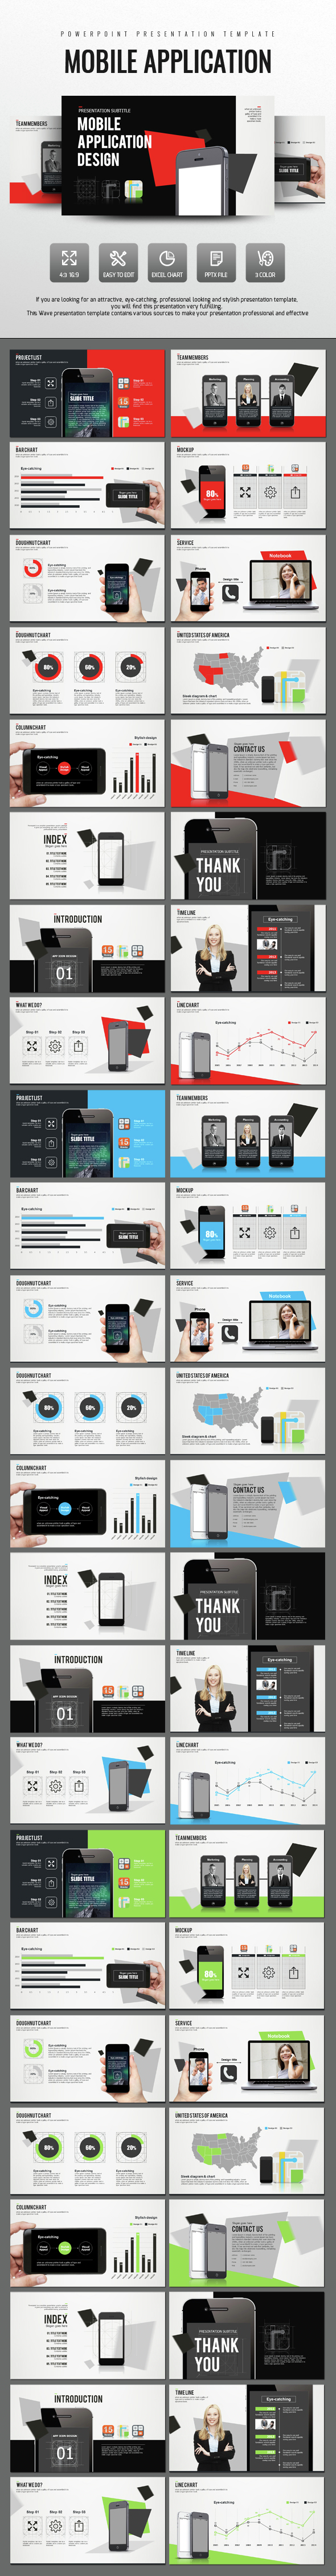 Mobile Application Design PowerPoint - PowerPoint Templates Presentation Templates